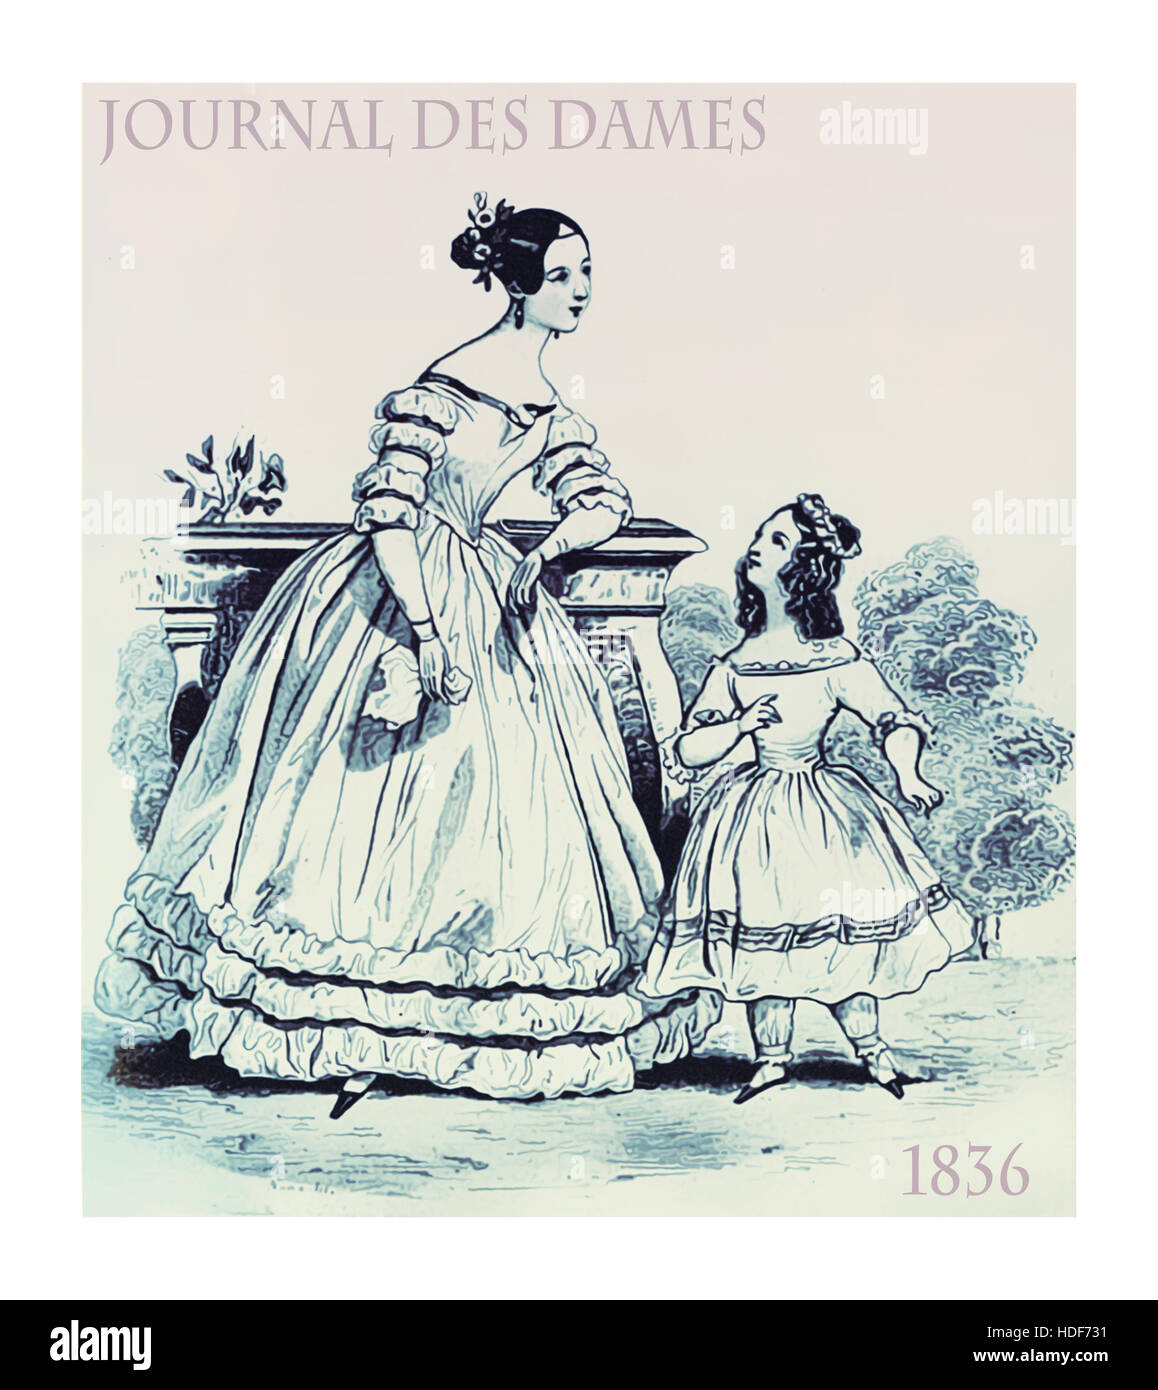 French 1836 fashion, young lady and girl elegant dressed with laces, frills and hairdo in garden - Stock Image